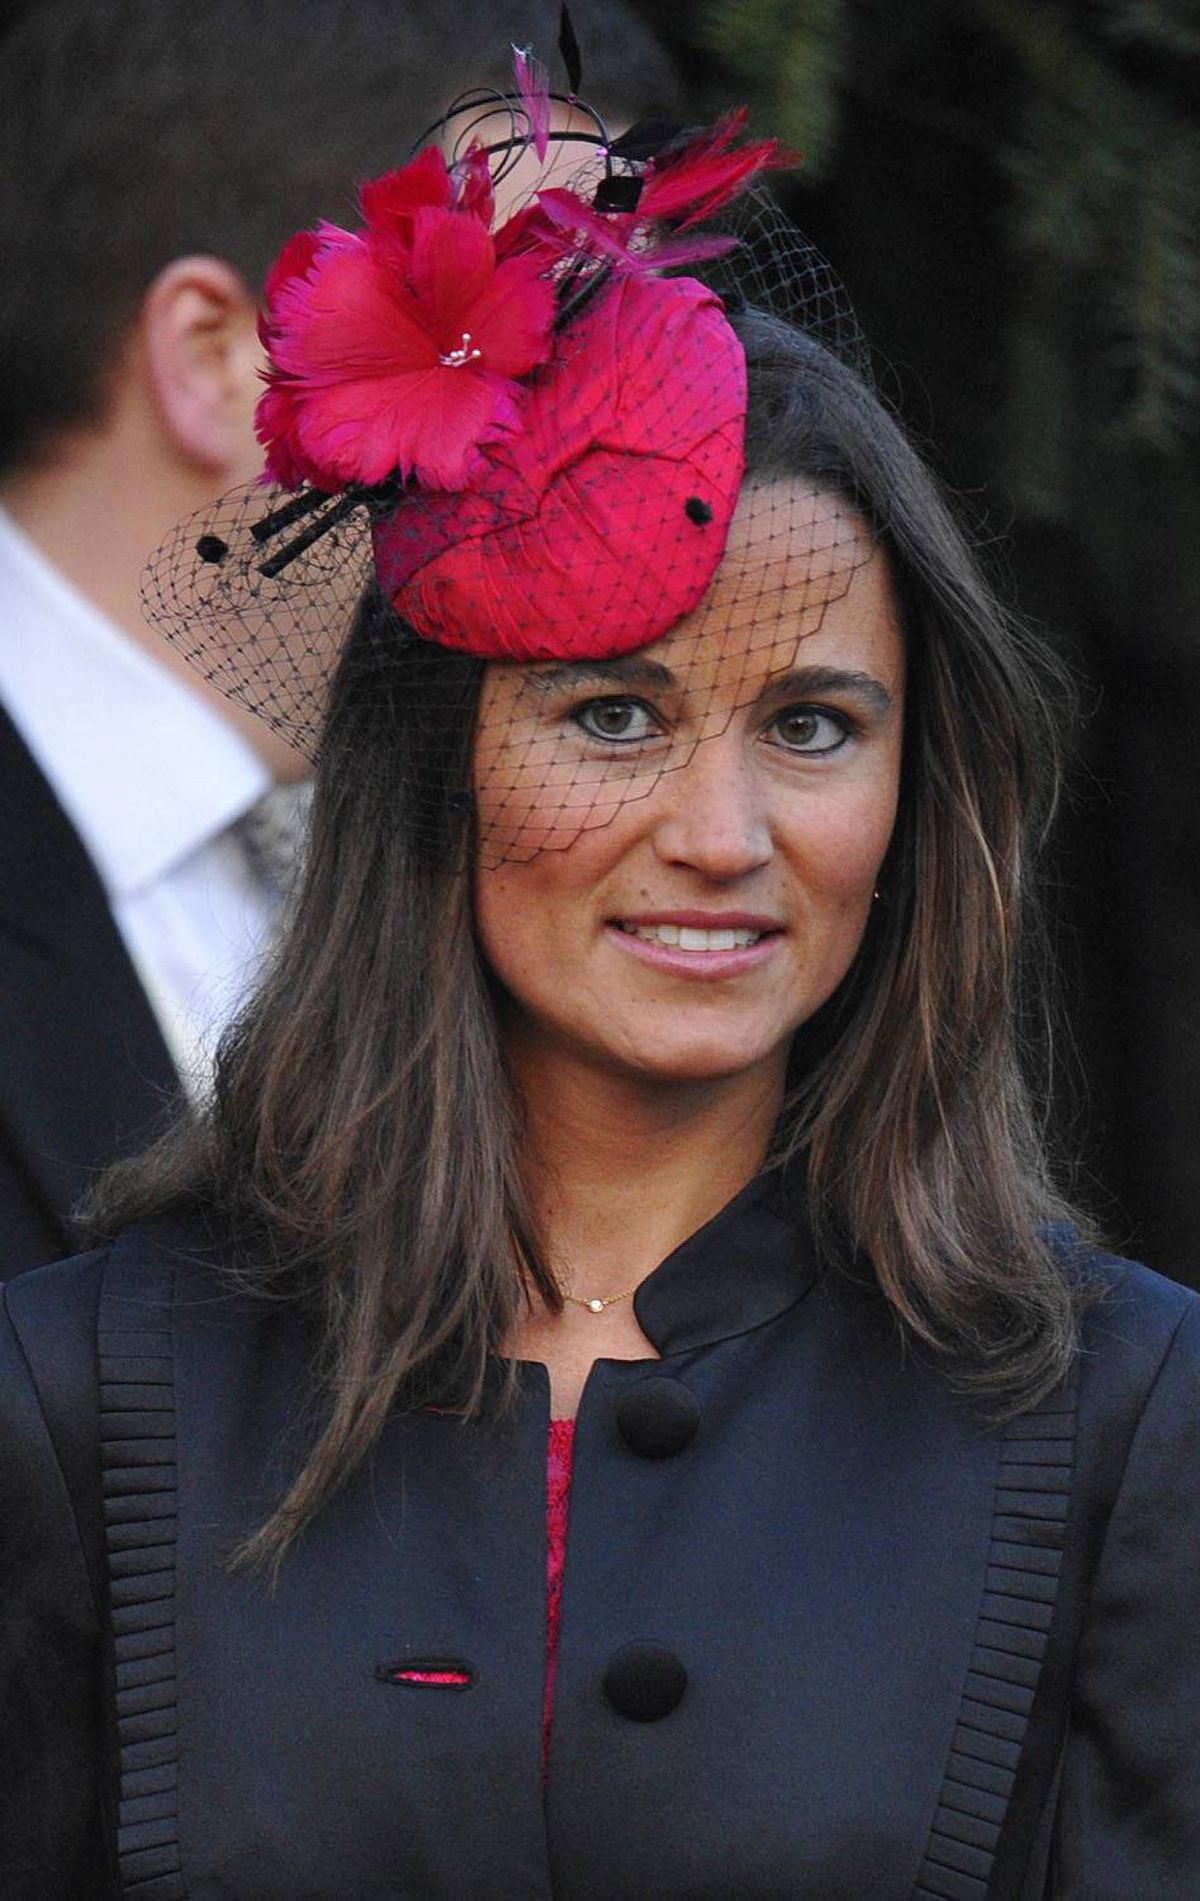 Before the nuptials of her sister, Pippa Middleton was just another young Londoner.